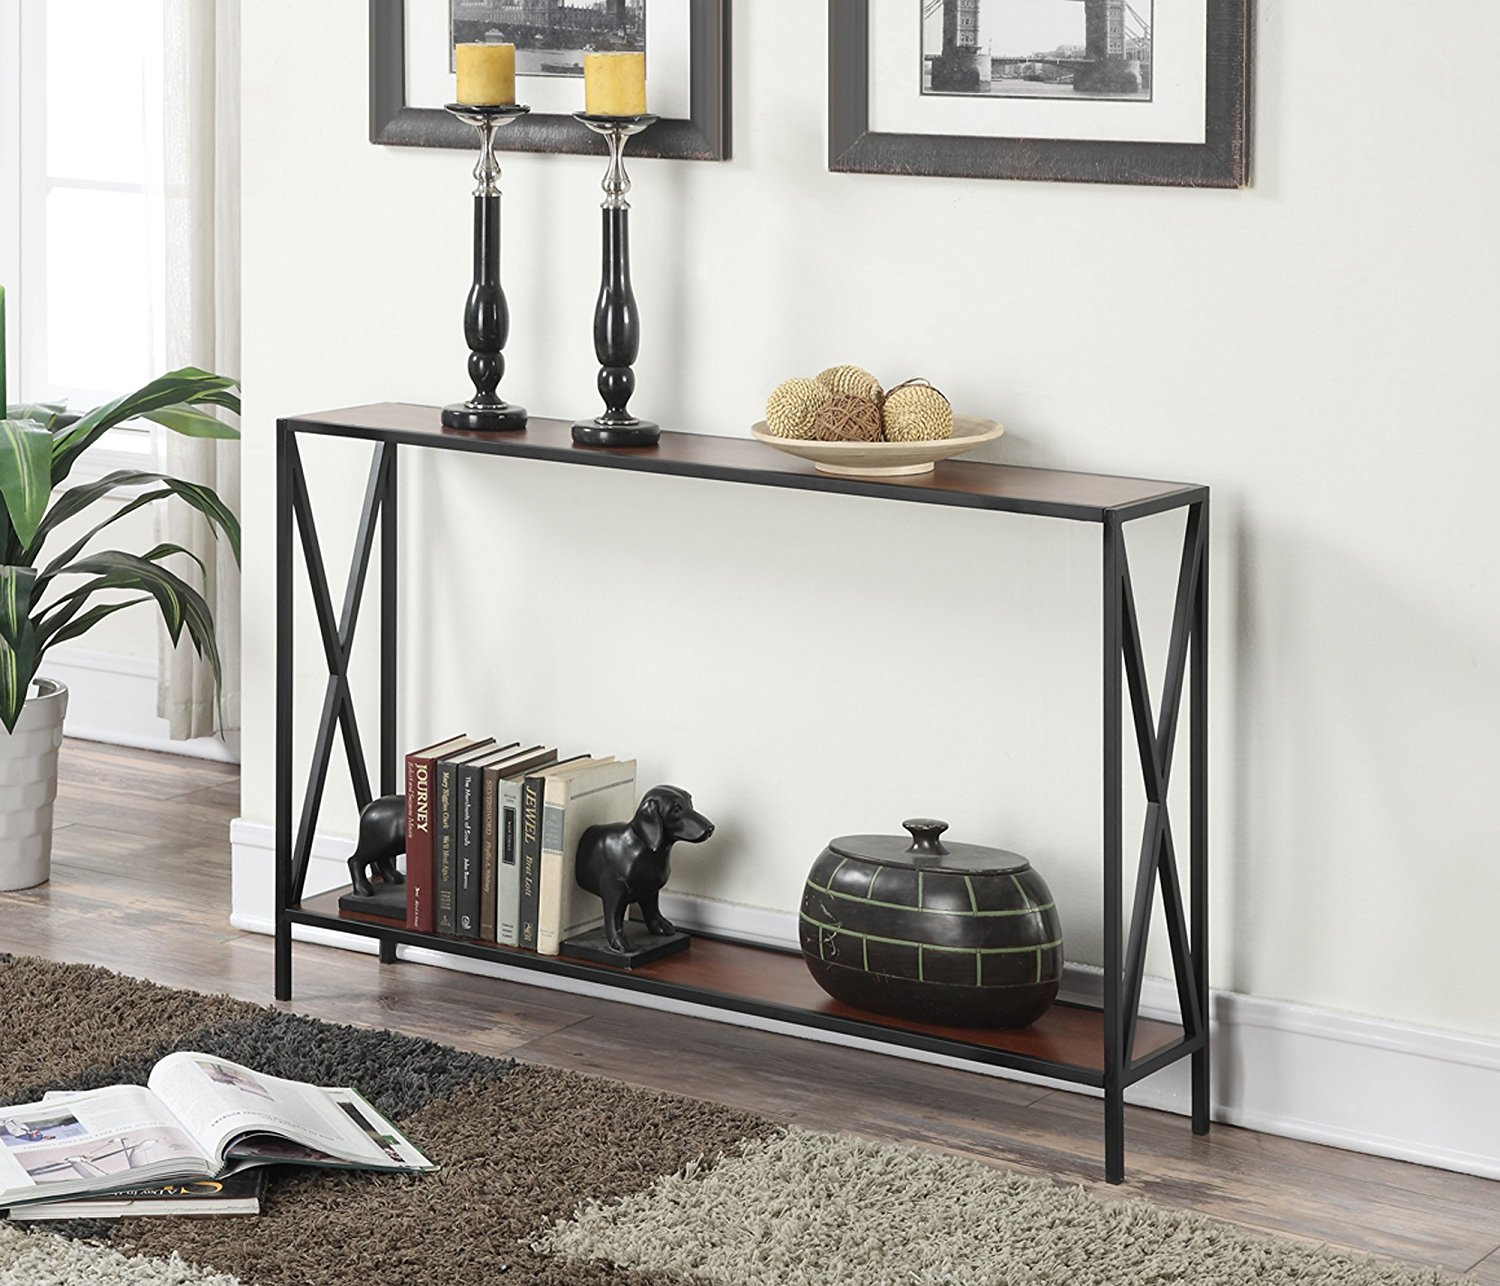 [Review]Convenience Concepts Tucson Collection Console Table, Black/Cherry